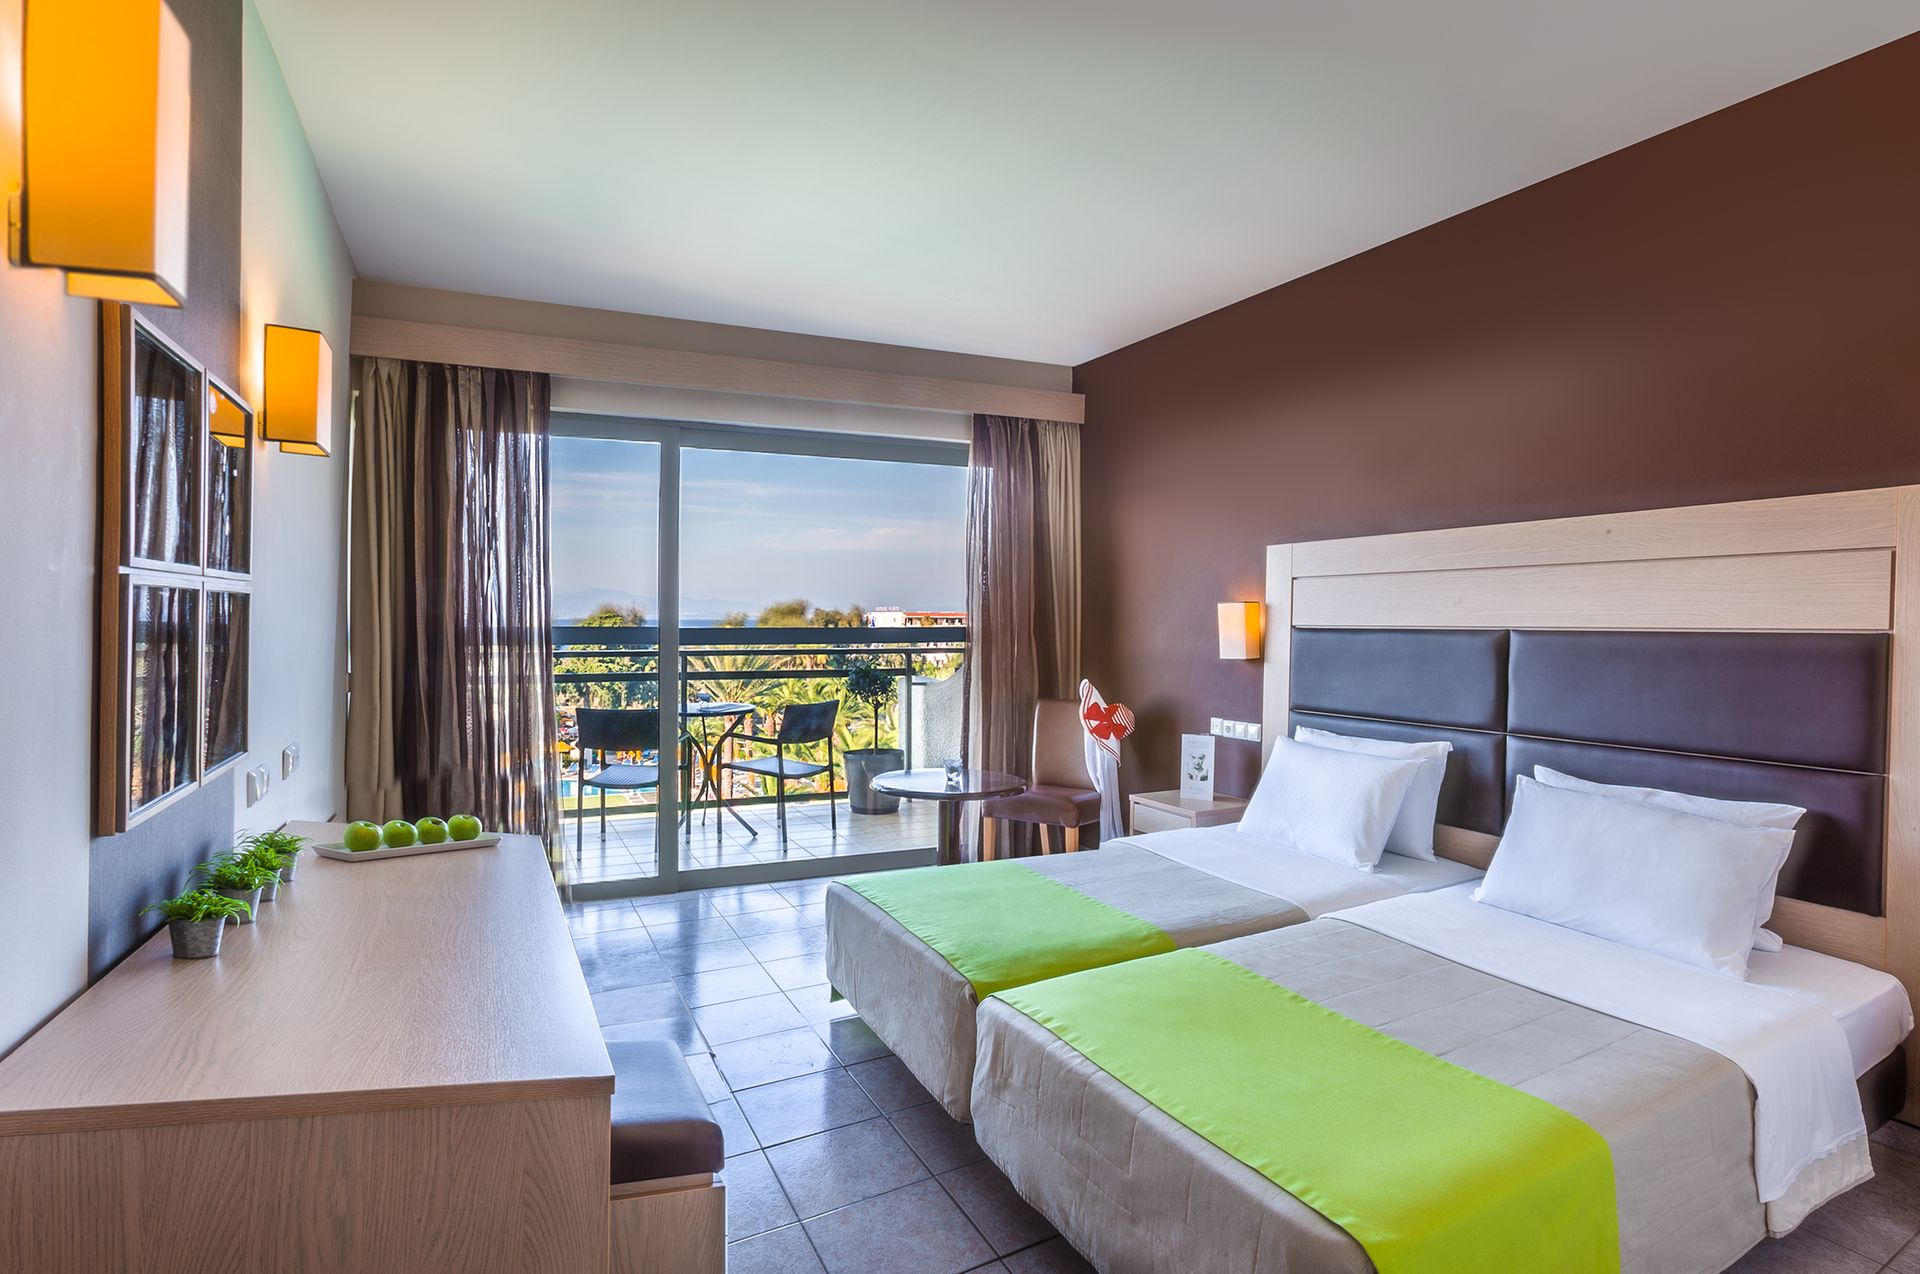 STAY MORE PAY LESS - 7 NIGHTS OFFER!